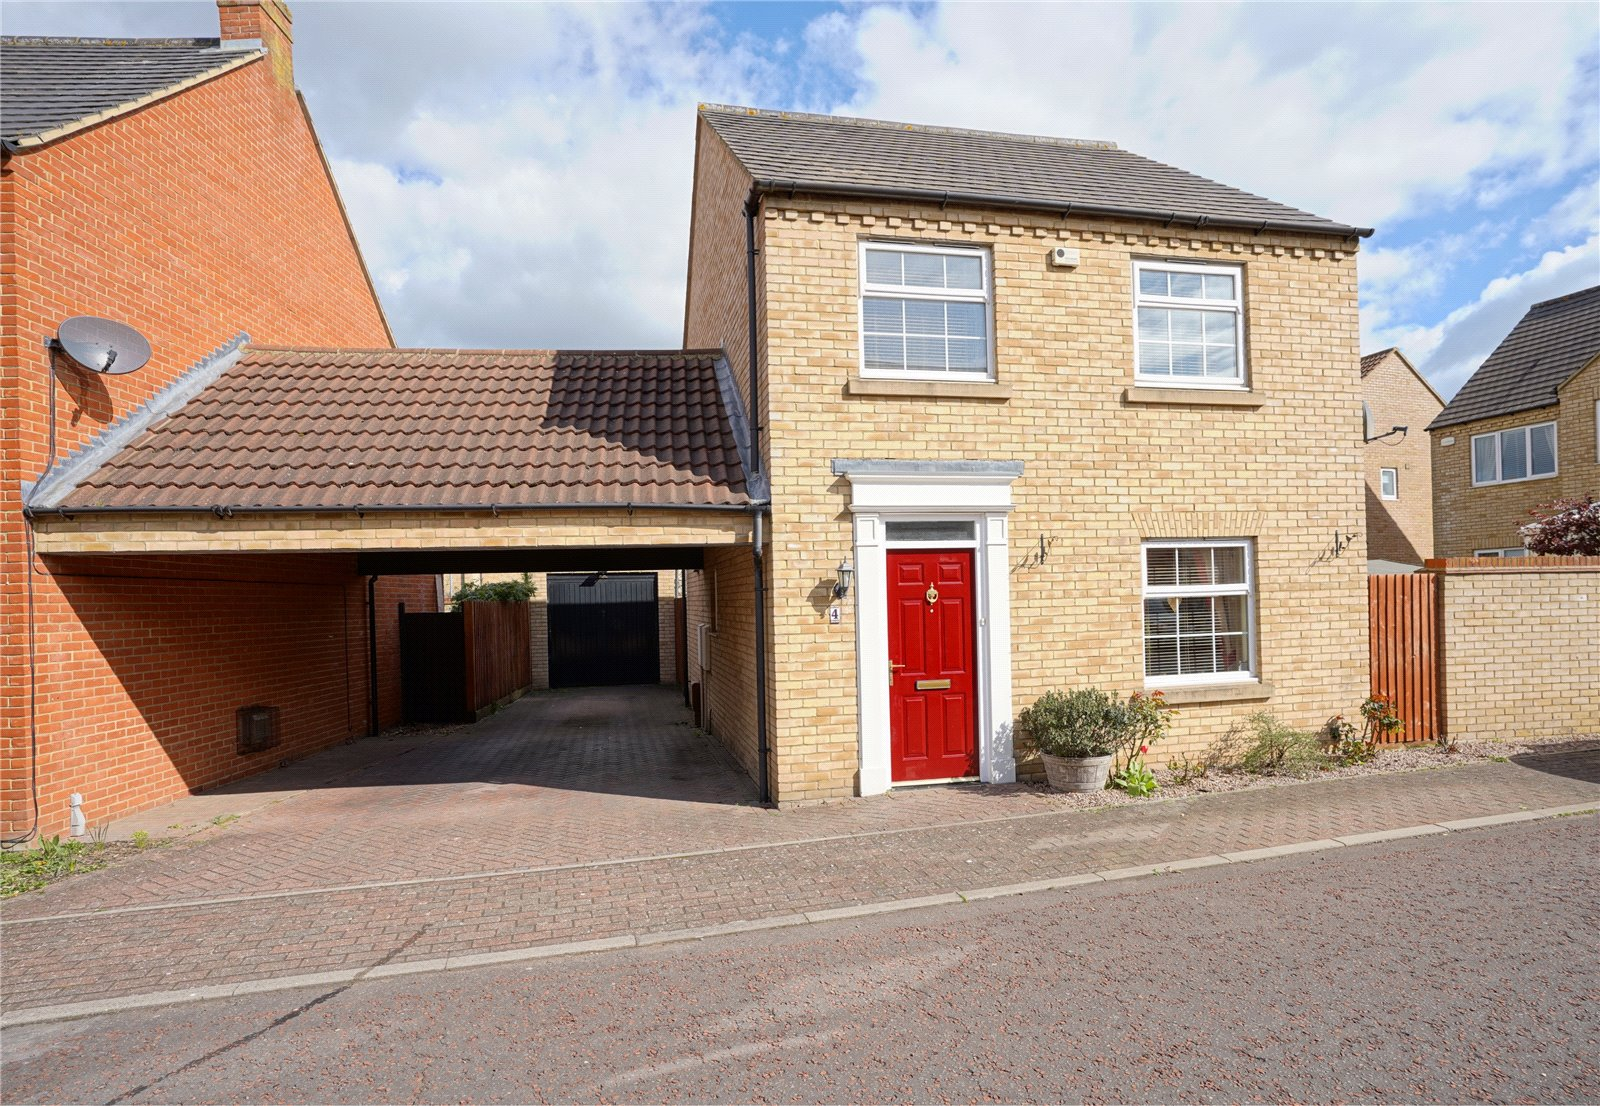 3 bed house for sale in Ream Close, Eynesbury, PE19